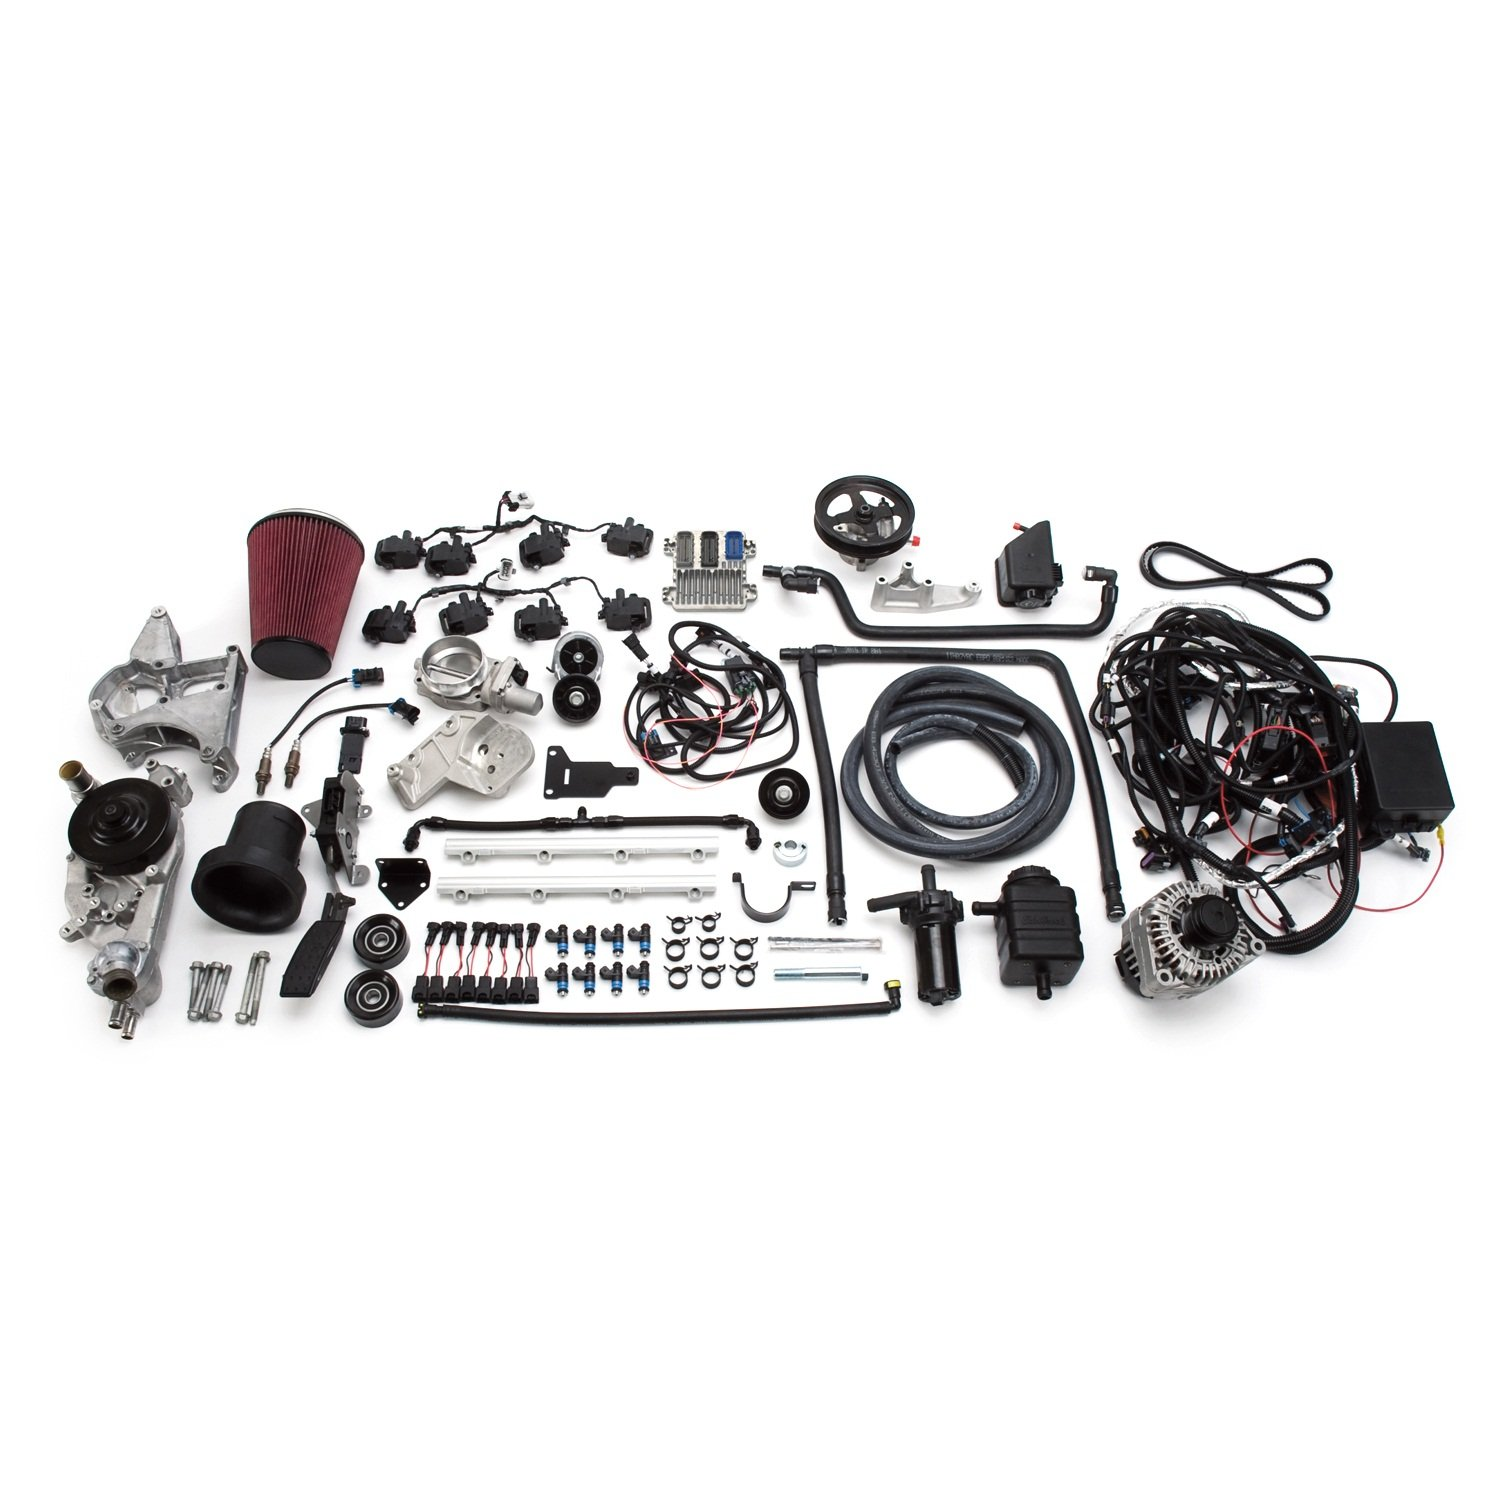 Edelbrock 46760 Supercharged LS 416 Crate Engine and Electronics LongBlock Incl. E-Force Supercharger/Engine Harness/ECU/Elect. Throttle Pedal/Ign. Coils/Heated O2 Sensors/Alternator/WaterPump Supercharged LS 416 Crate Engine and Electronics